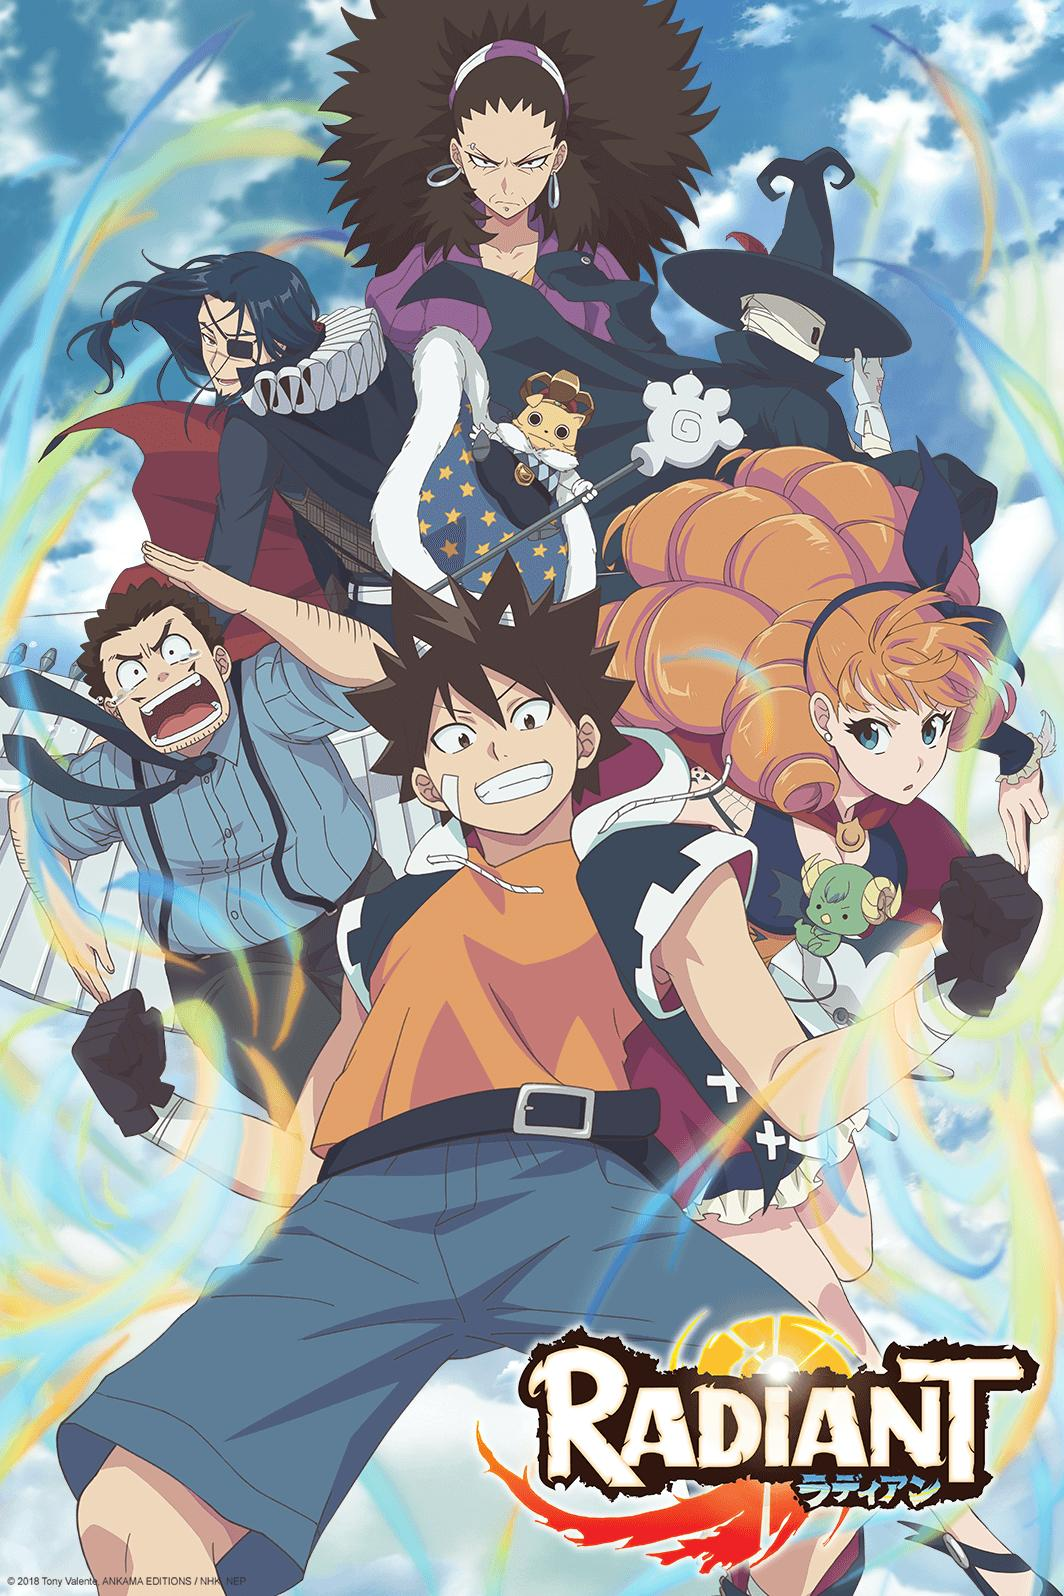 RADIANT - Watch on Crunchyroll